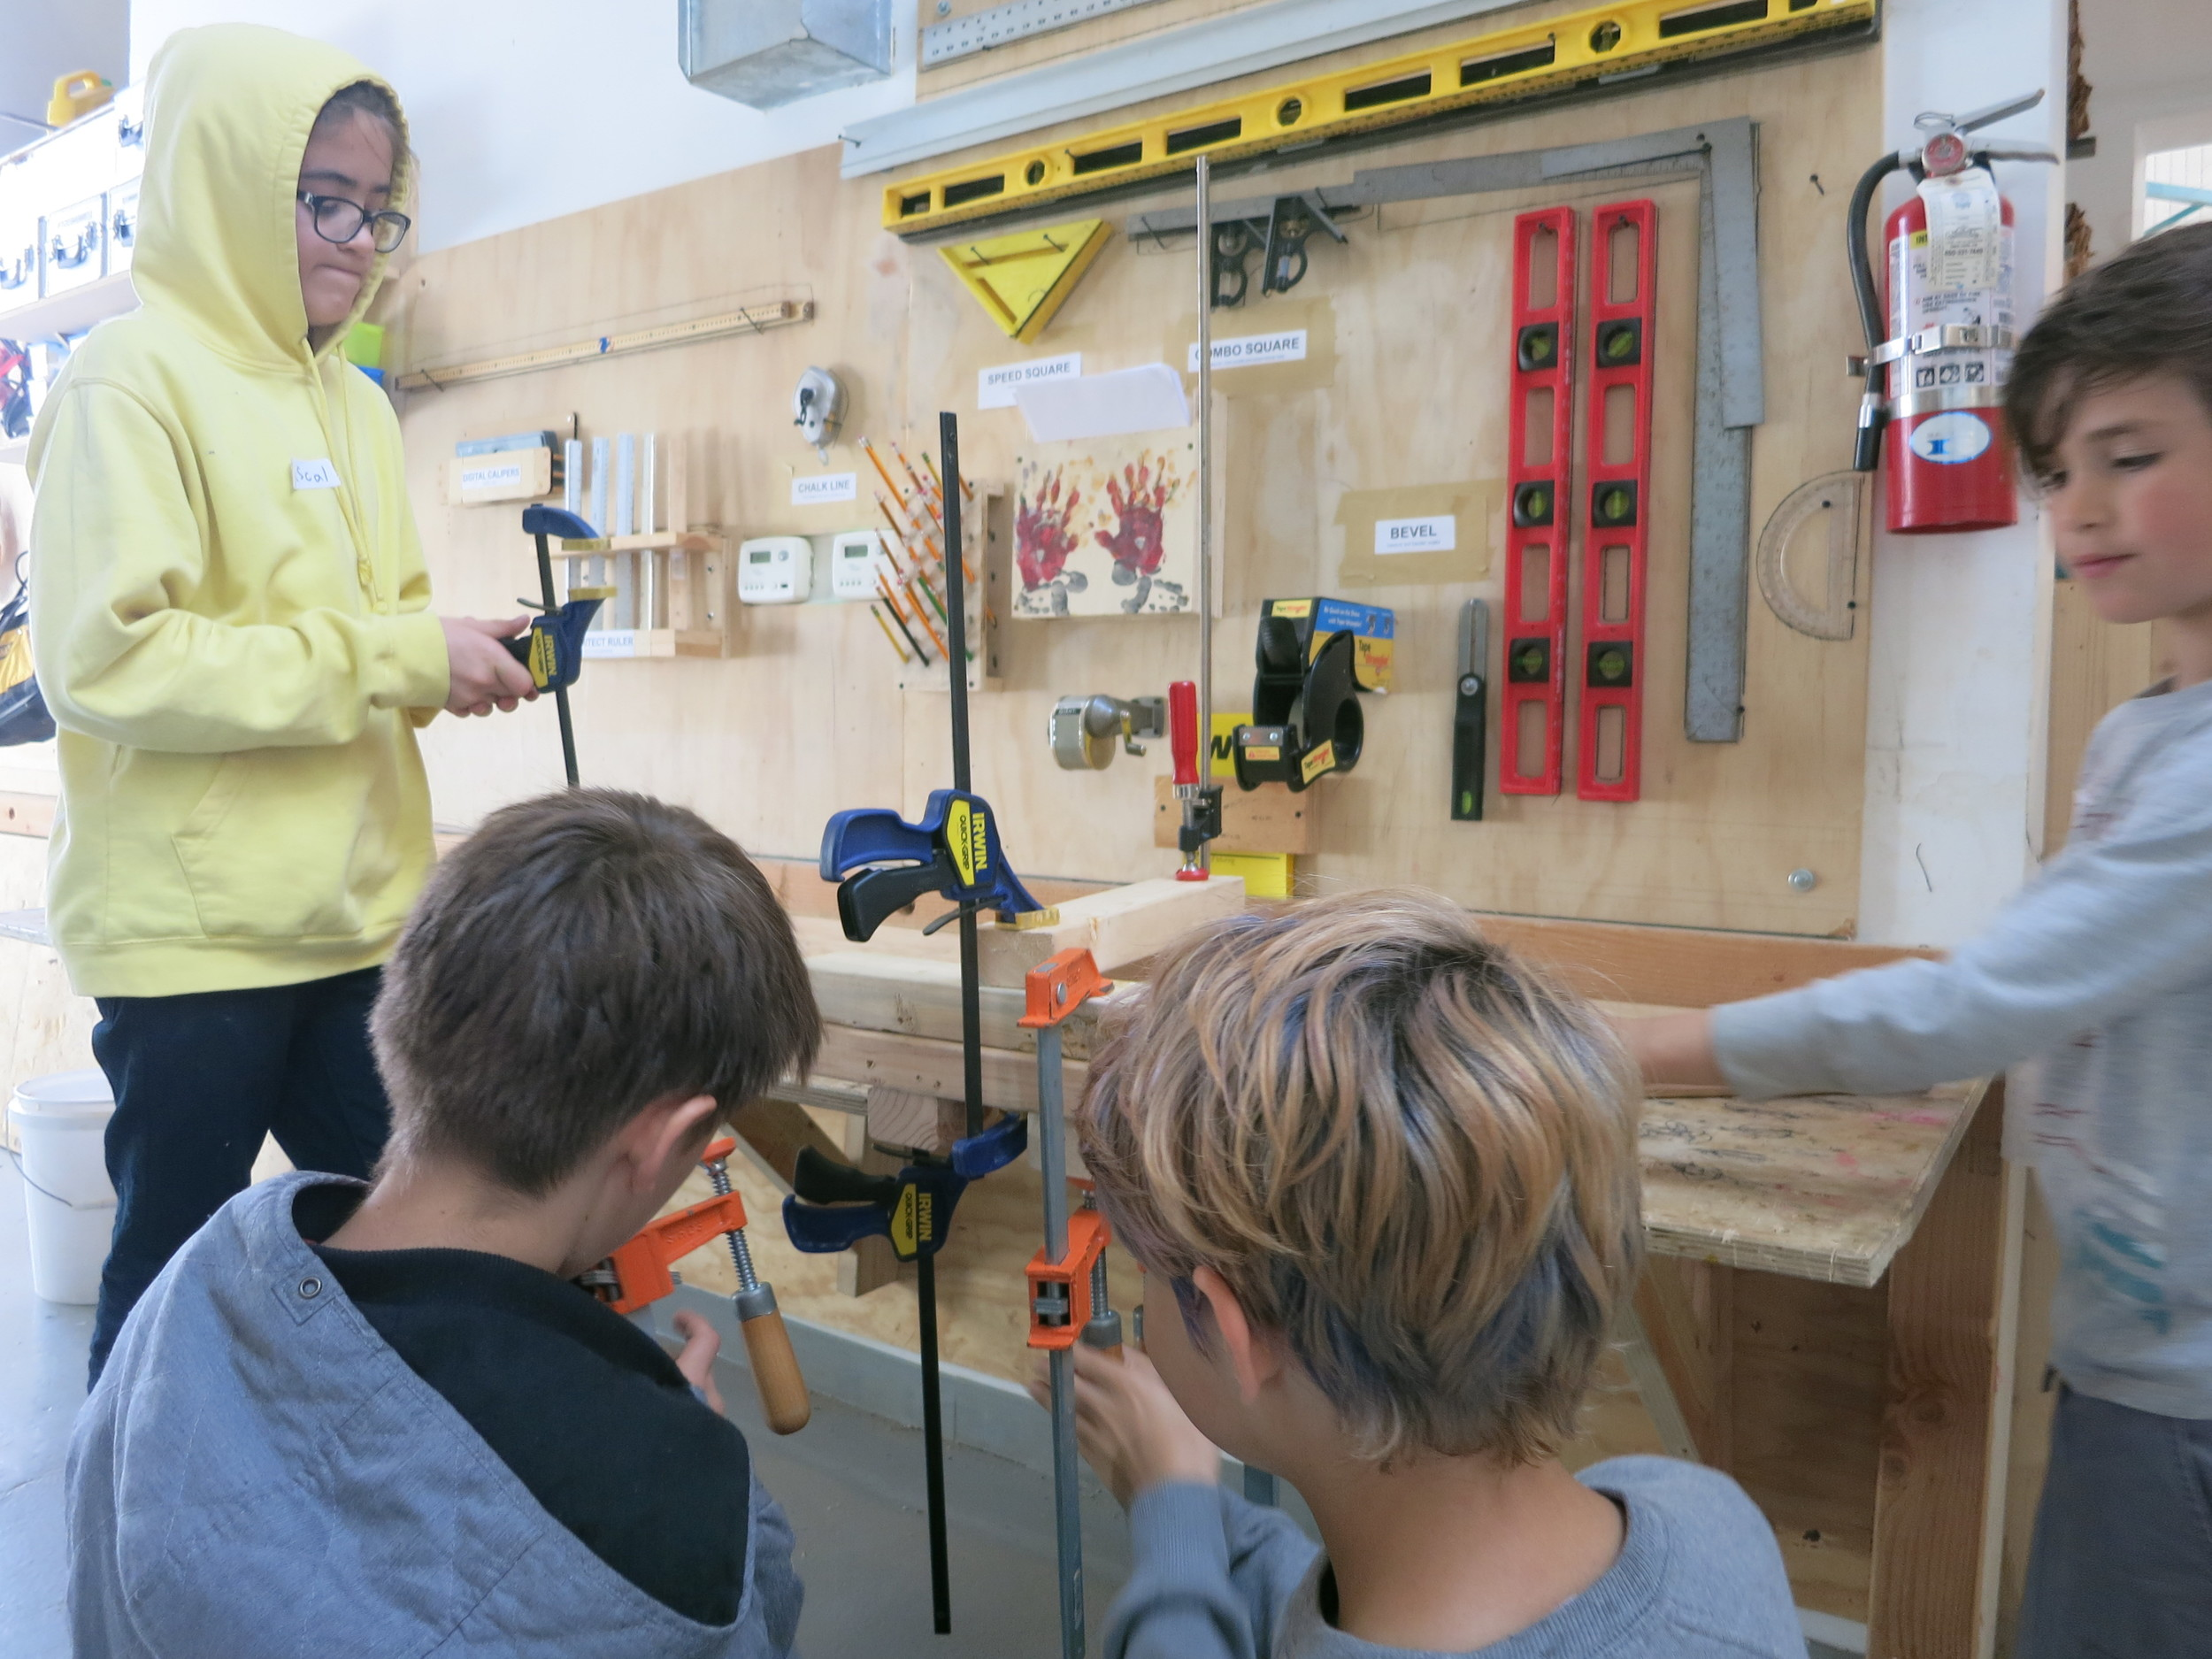 Pascal, Romy, Jacob, and Isaac work together to get the hang of clamps.